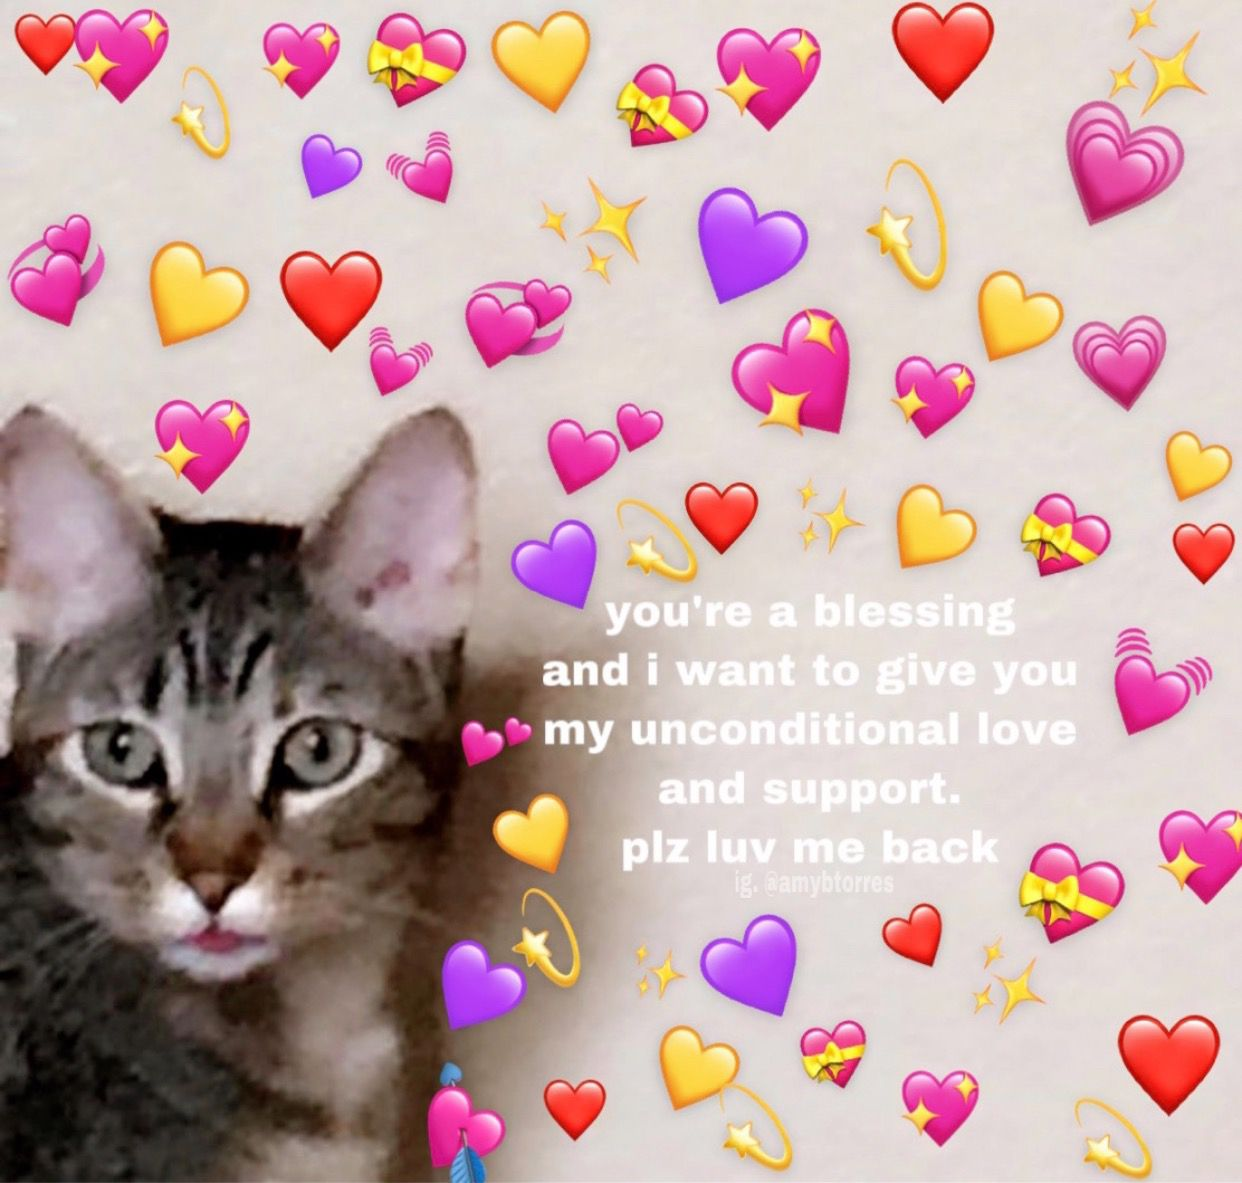 𝘤𝘰𝘴𝘮𝘪𝘤𝘨𝘰𝘵𝘩 ♡ 𝘪𝘨 𝘢𝘮𝘺𝘣𝘵𝘰𝘳𝘳𝘦𝘴 Cute love memes, Wholesome